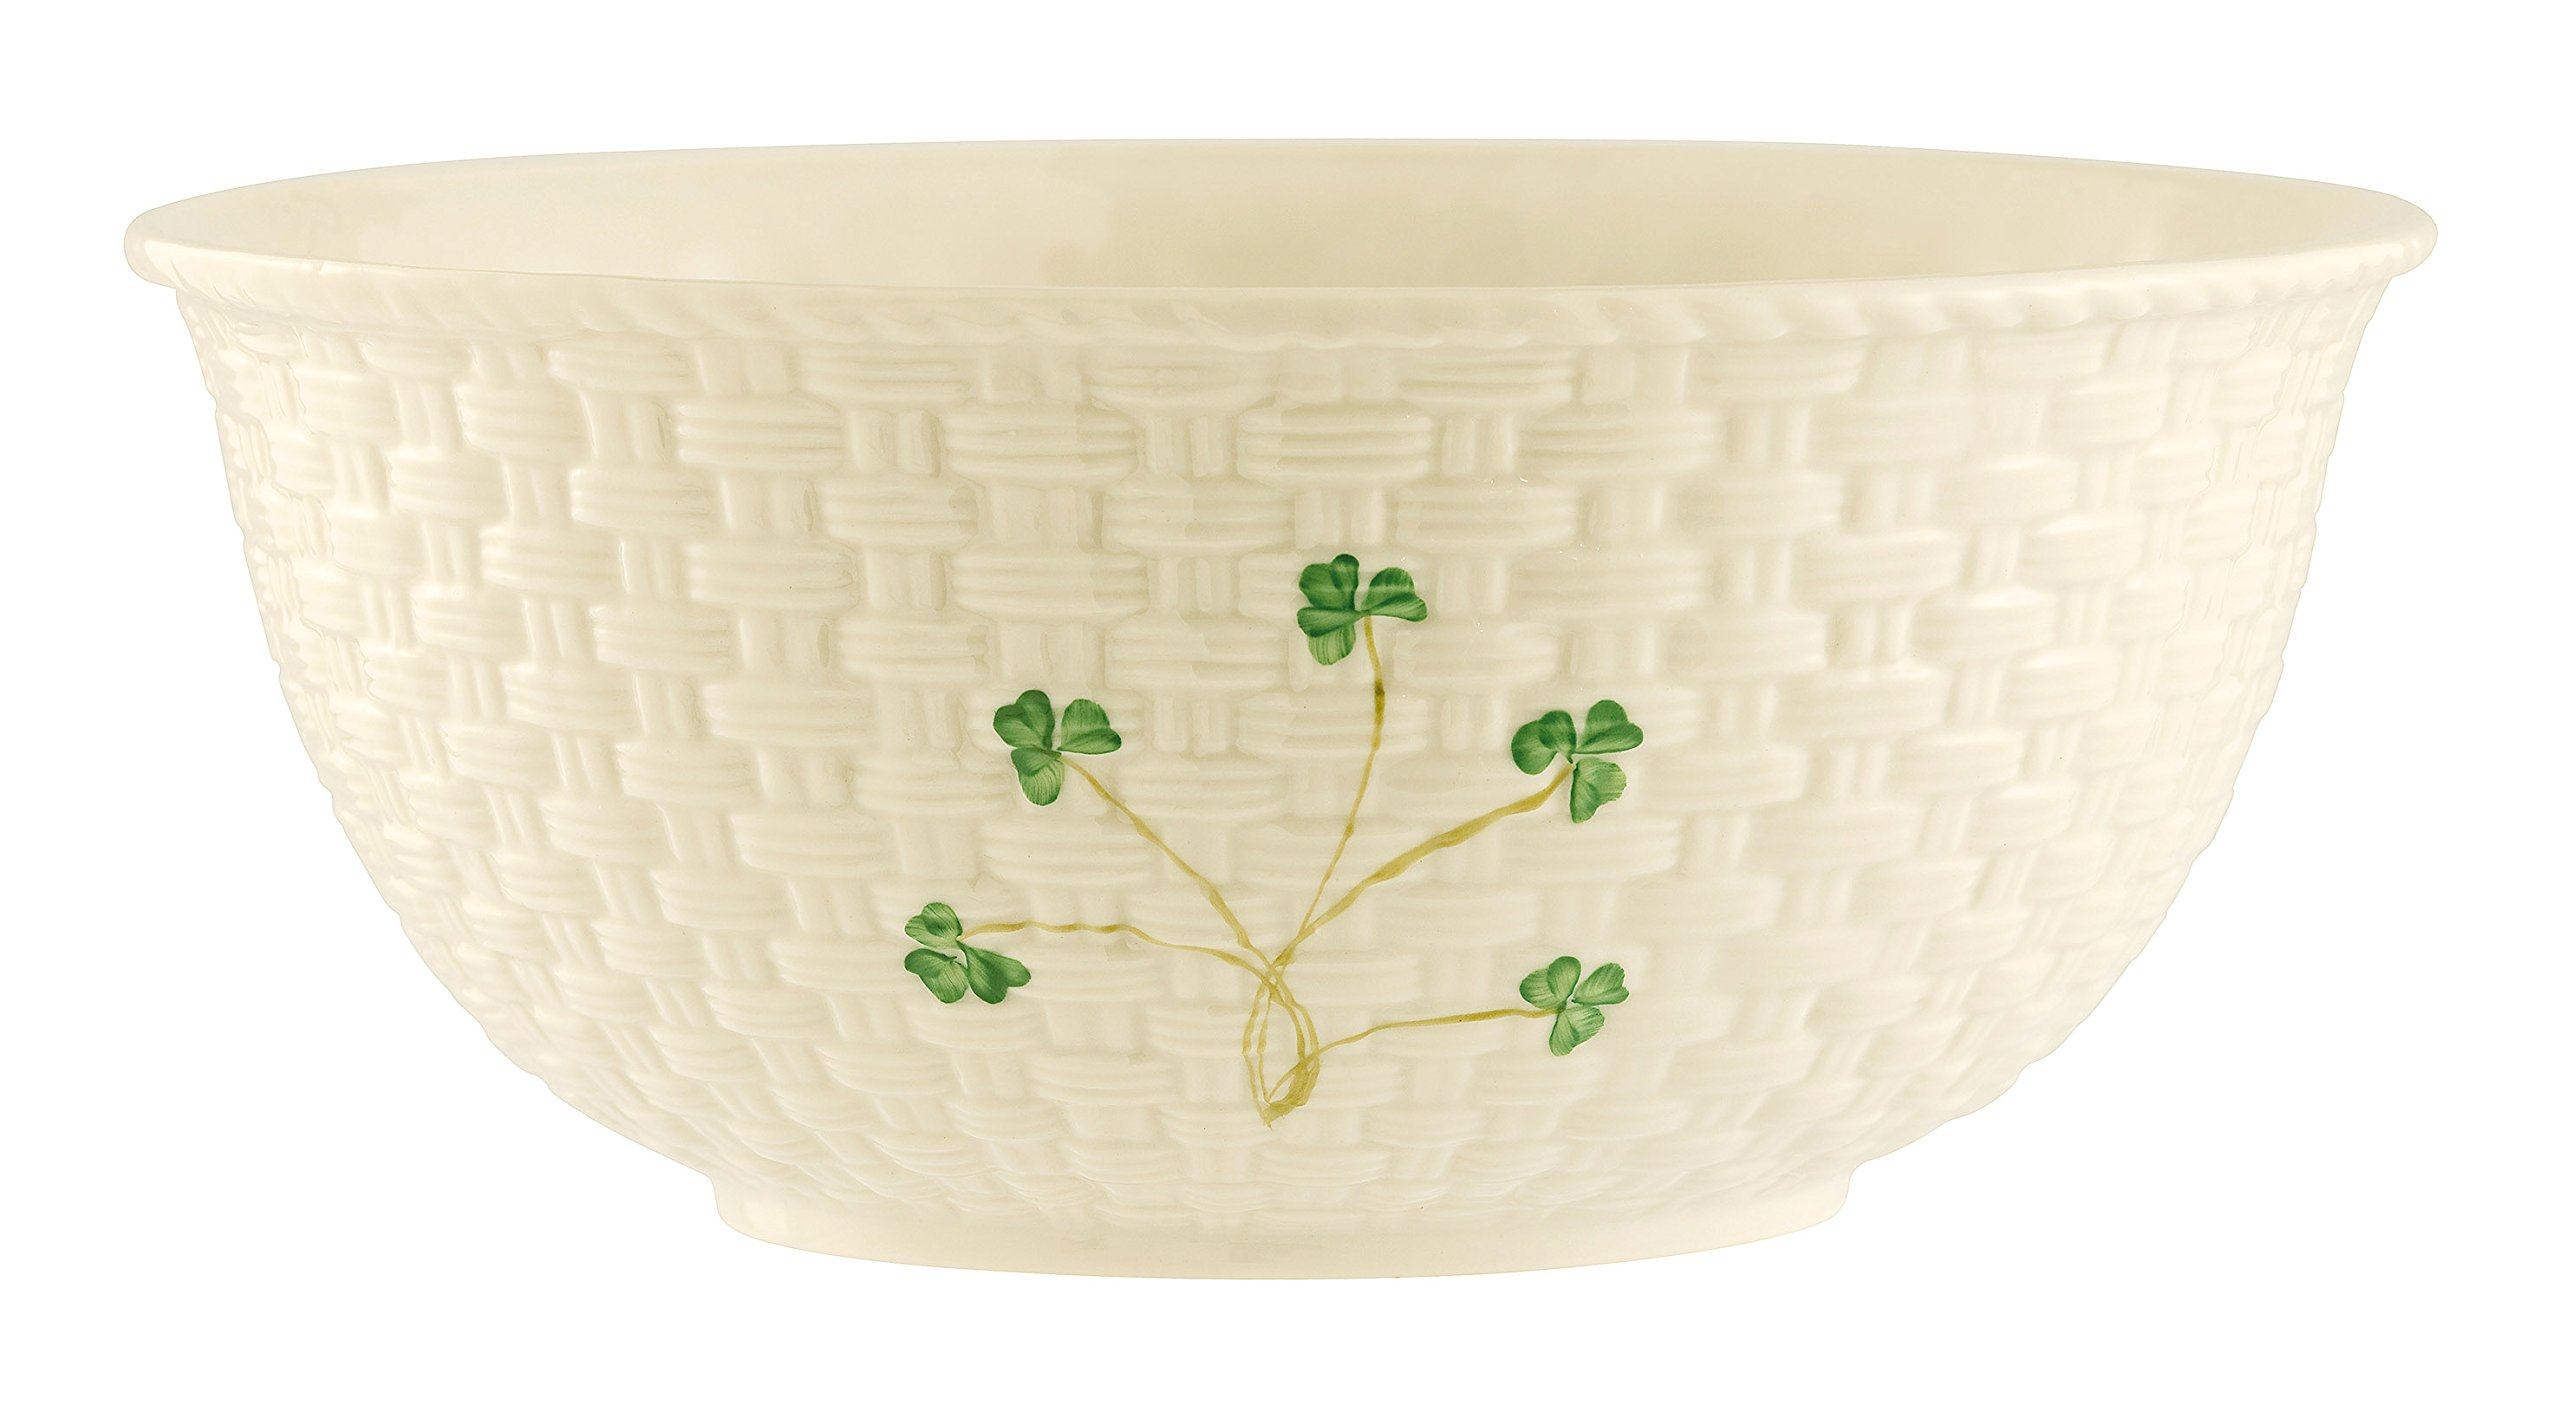 Belleek Group 1316 Shamrock Mixing Bowl, 9.5-Inch, White by Belleek Group